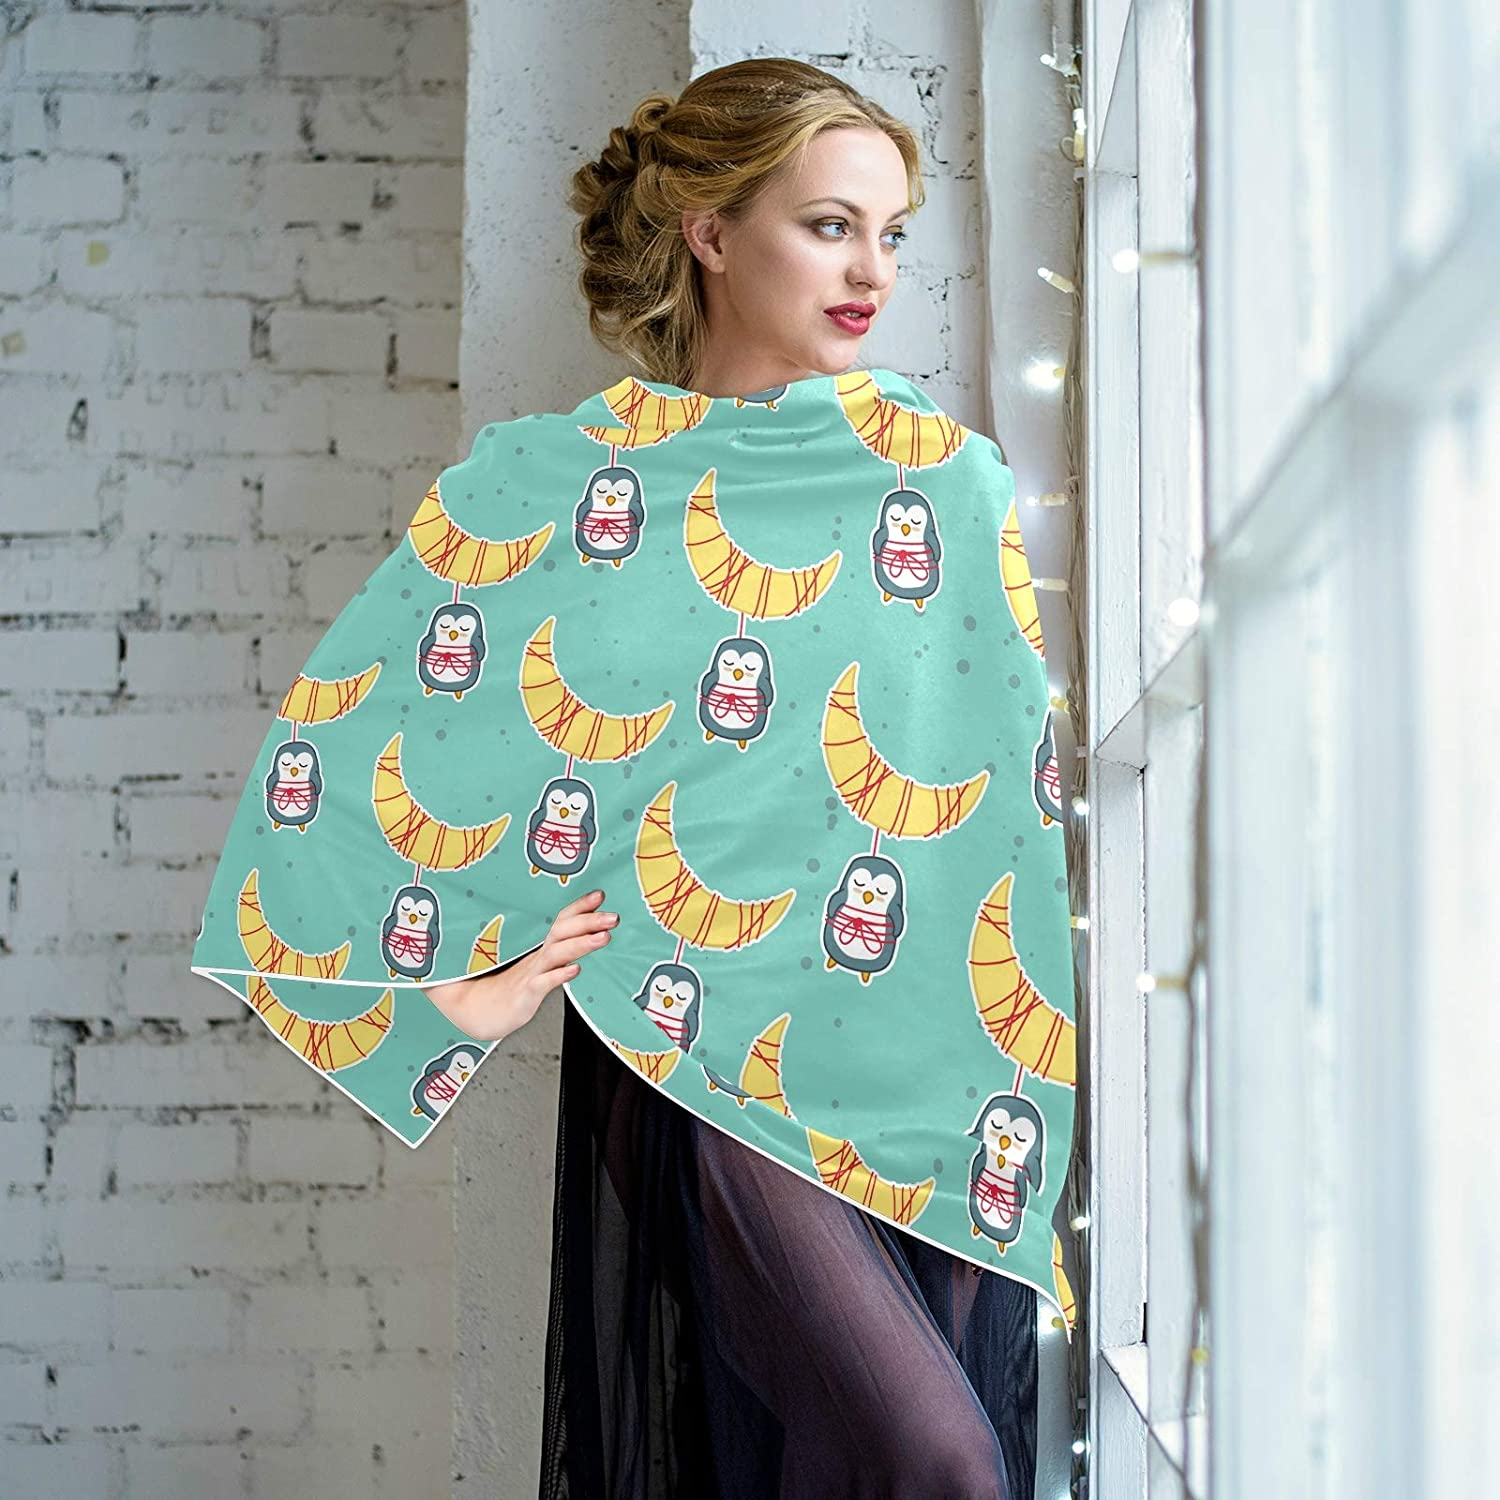 Scarf for Women and Men Penguins Moon Shawl Wraps Blanket Scarf Warm soft Winter Oversized Scarves Lightweight